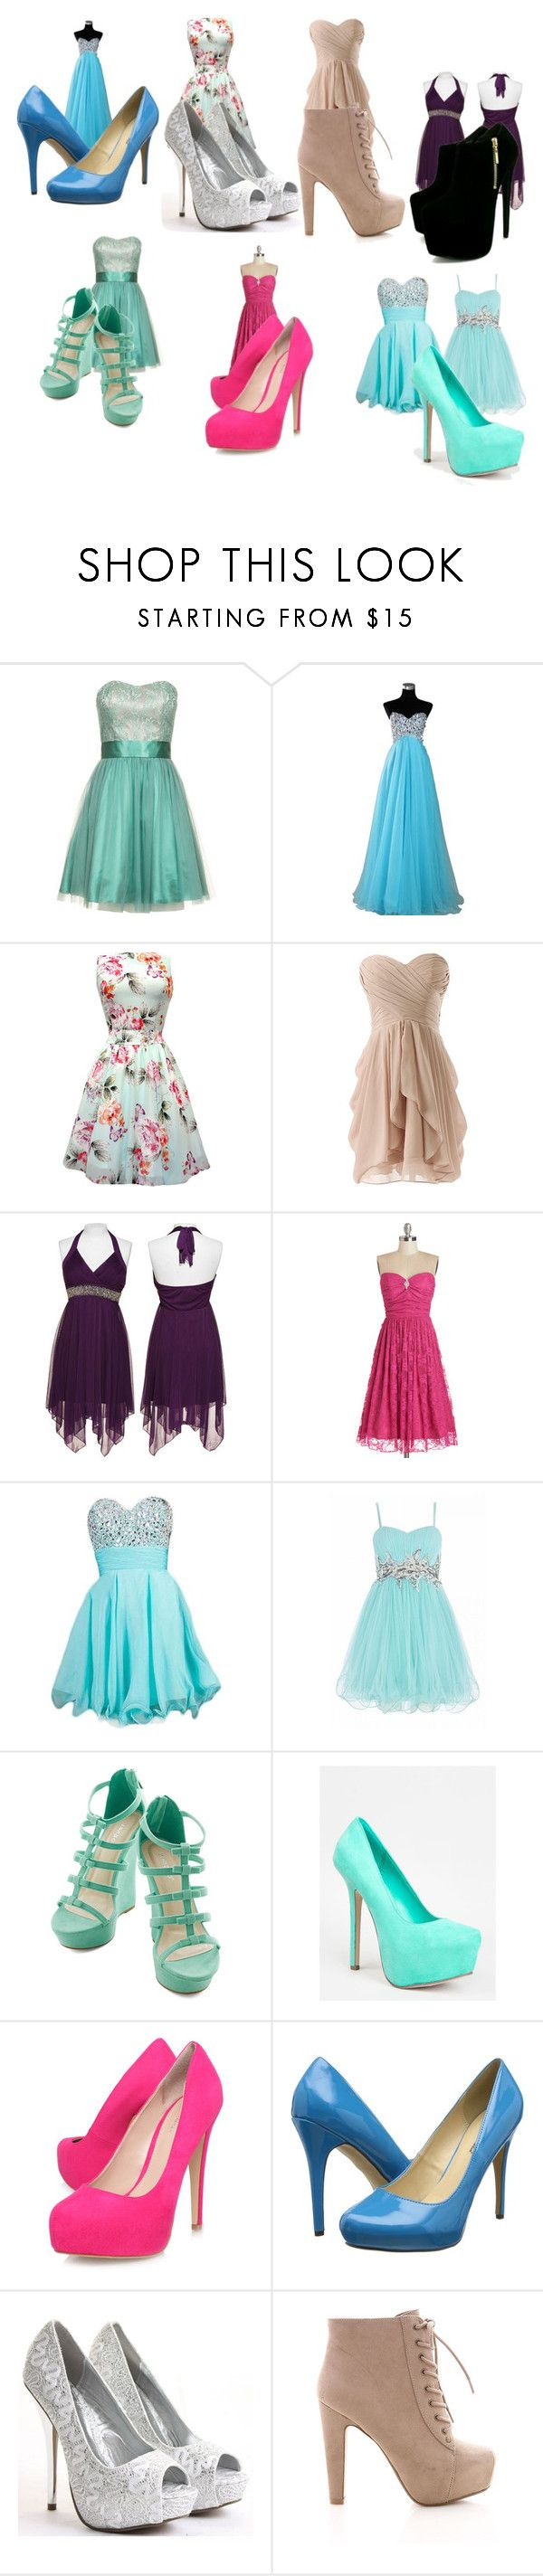 """concert"" by sheryl-4 ❤ liked on Polyvore featuring Laona, Trixxi, Quiz, Breckelle's, Carvela Kurt Geiger, Michael Antonio and Saba"